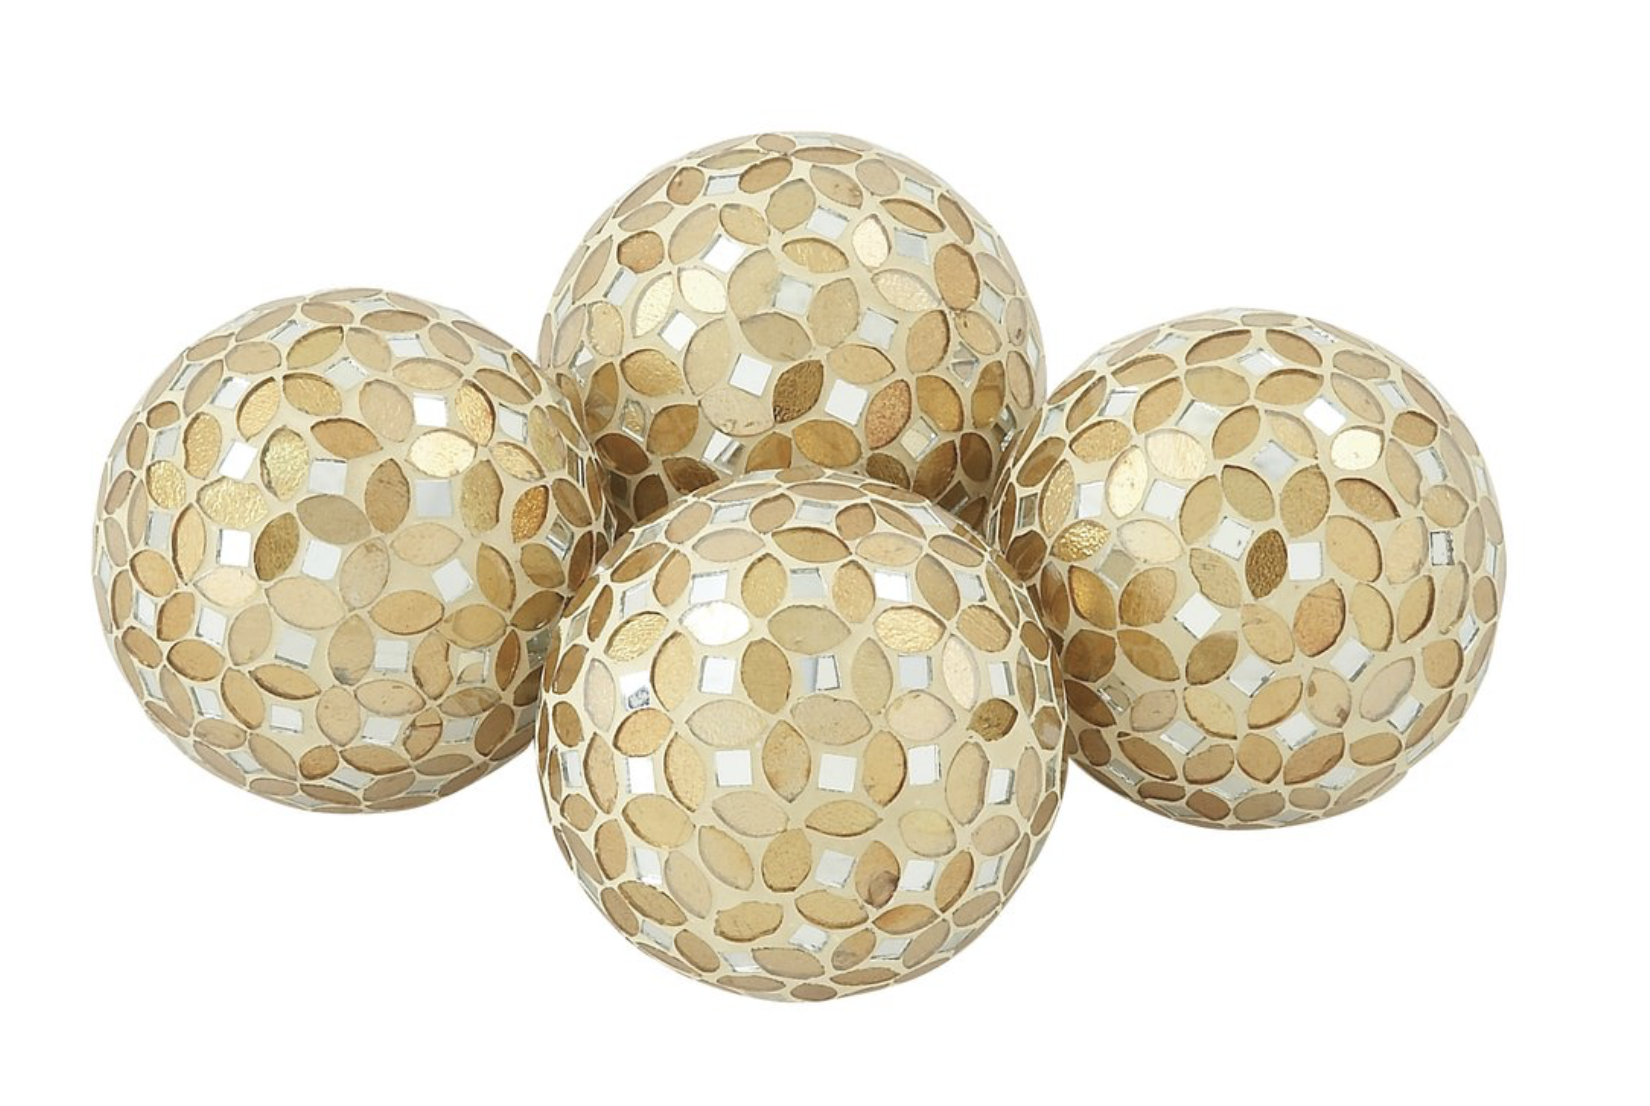 Mccary Pvc Glass Mosaic Orb Decorative Ball In 2020 Mosaic Glass Gold Home Accessories Decor